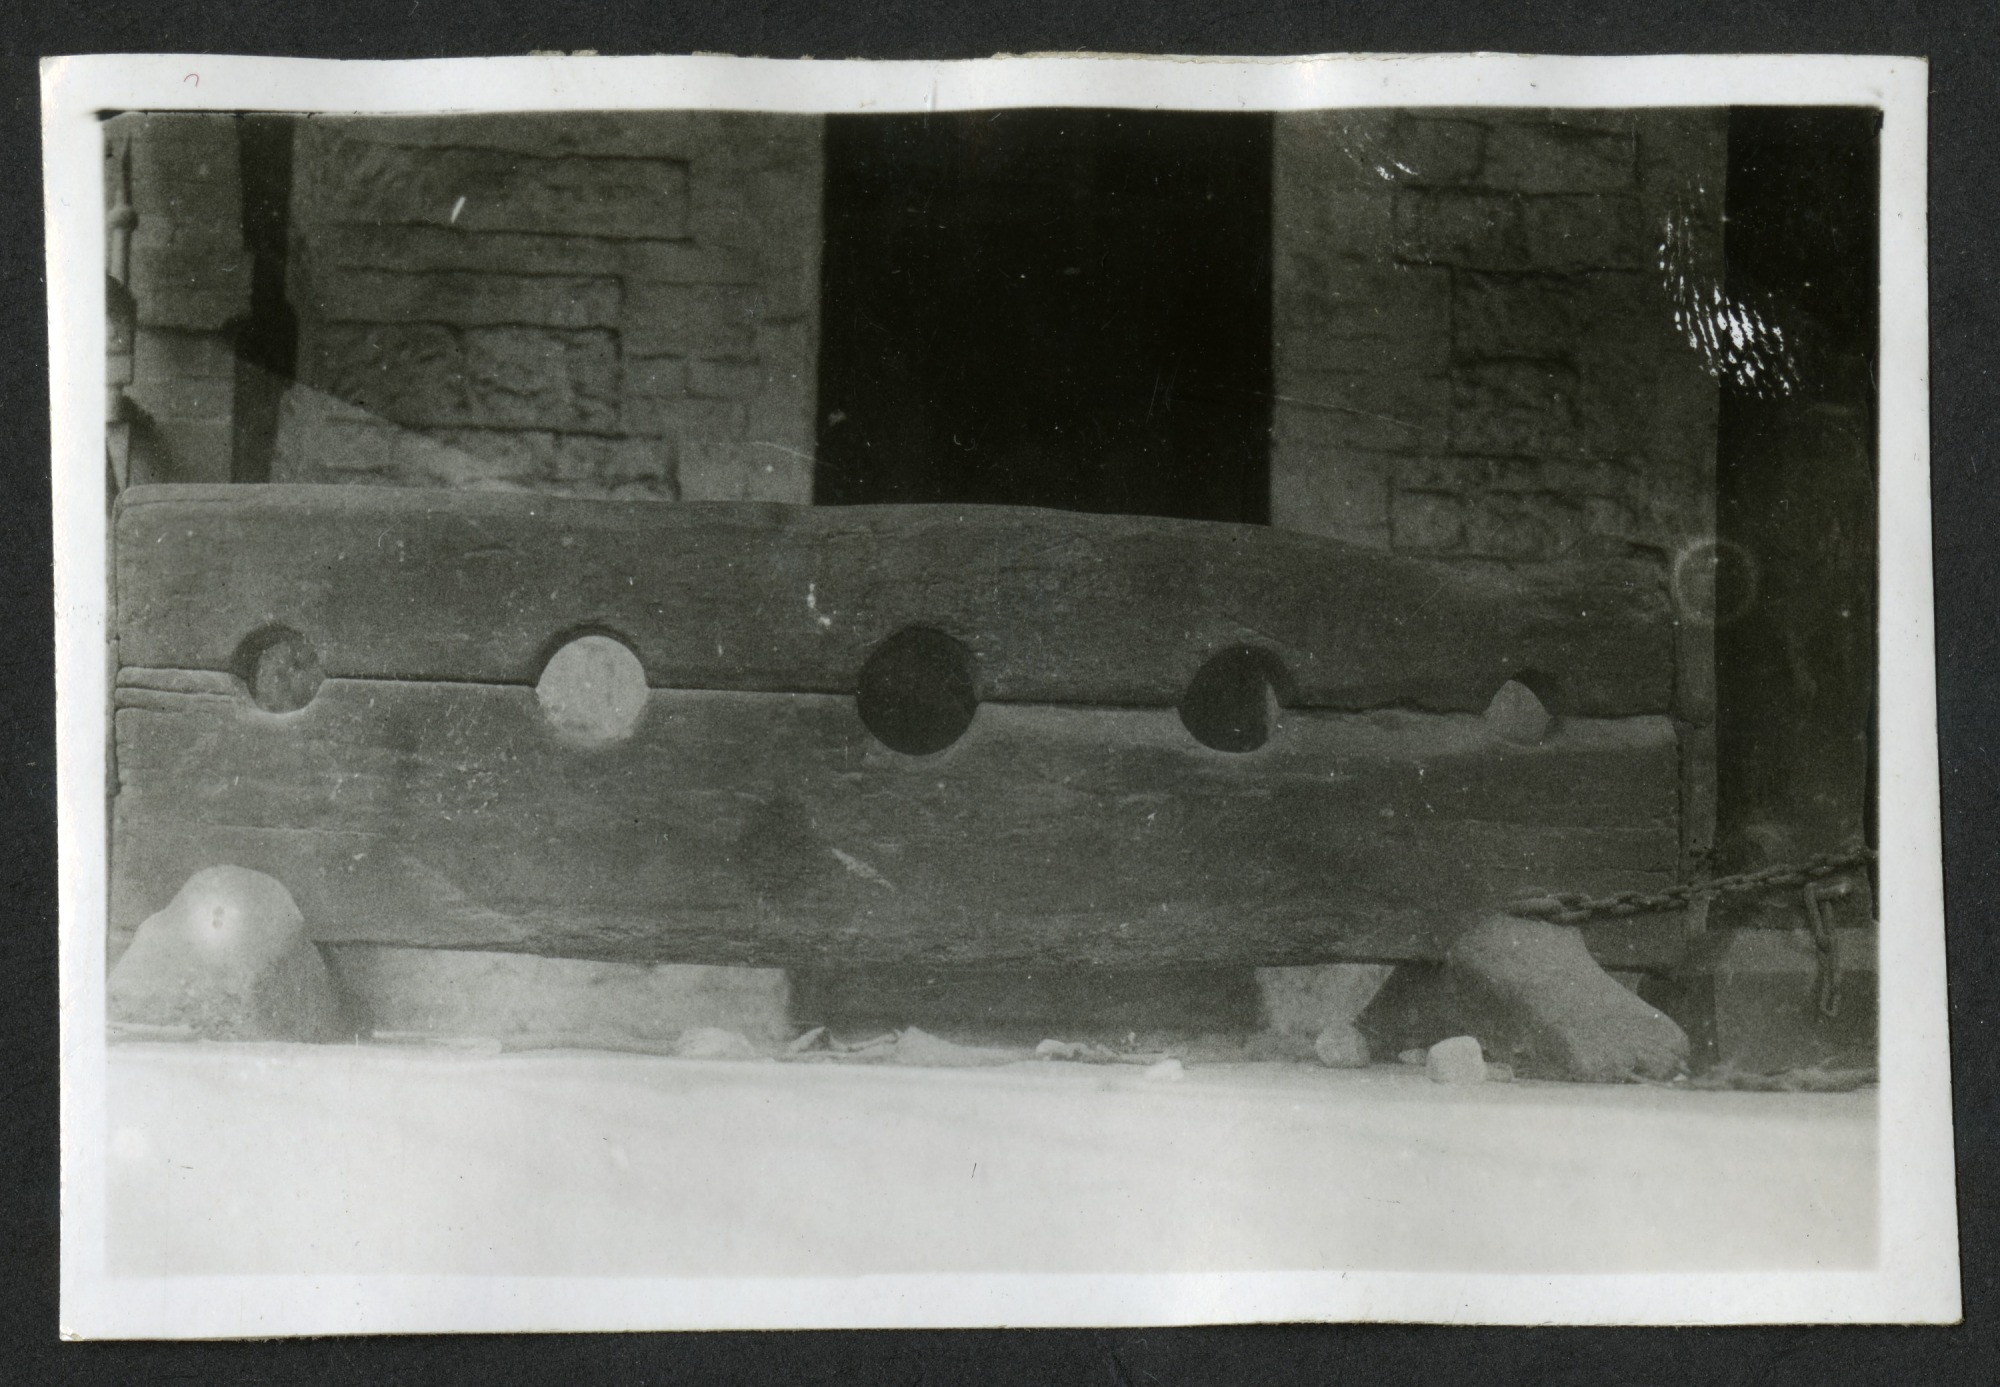 Five-Hole Stocks (possibly at Brading, Isle of Wight)